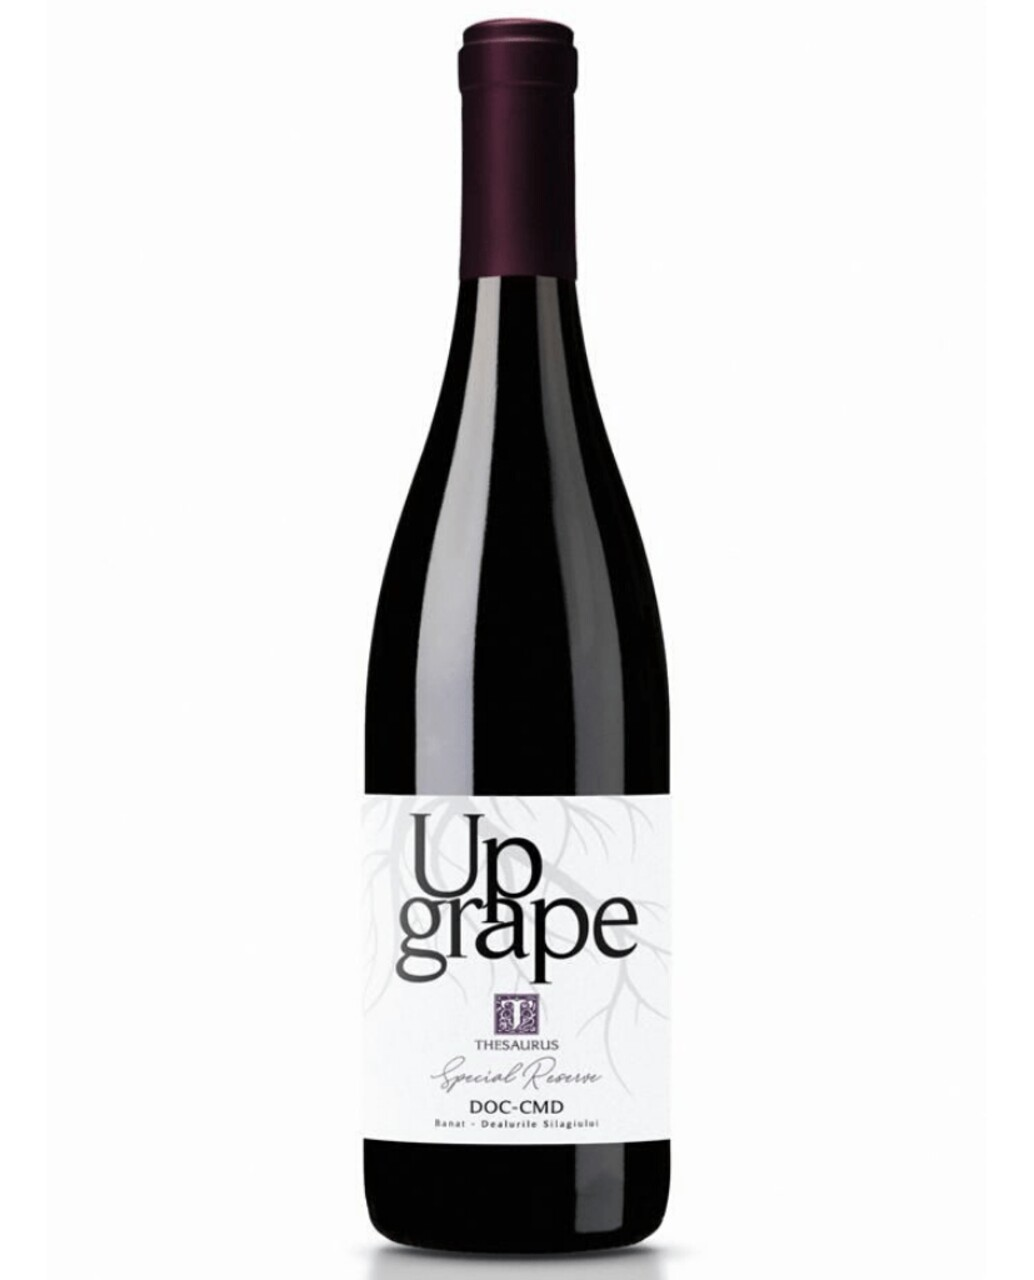 Thesaurus Upgrape Special Reserve